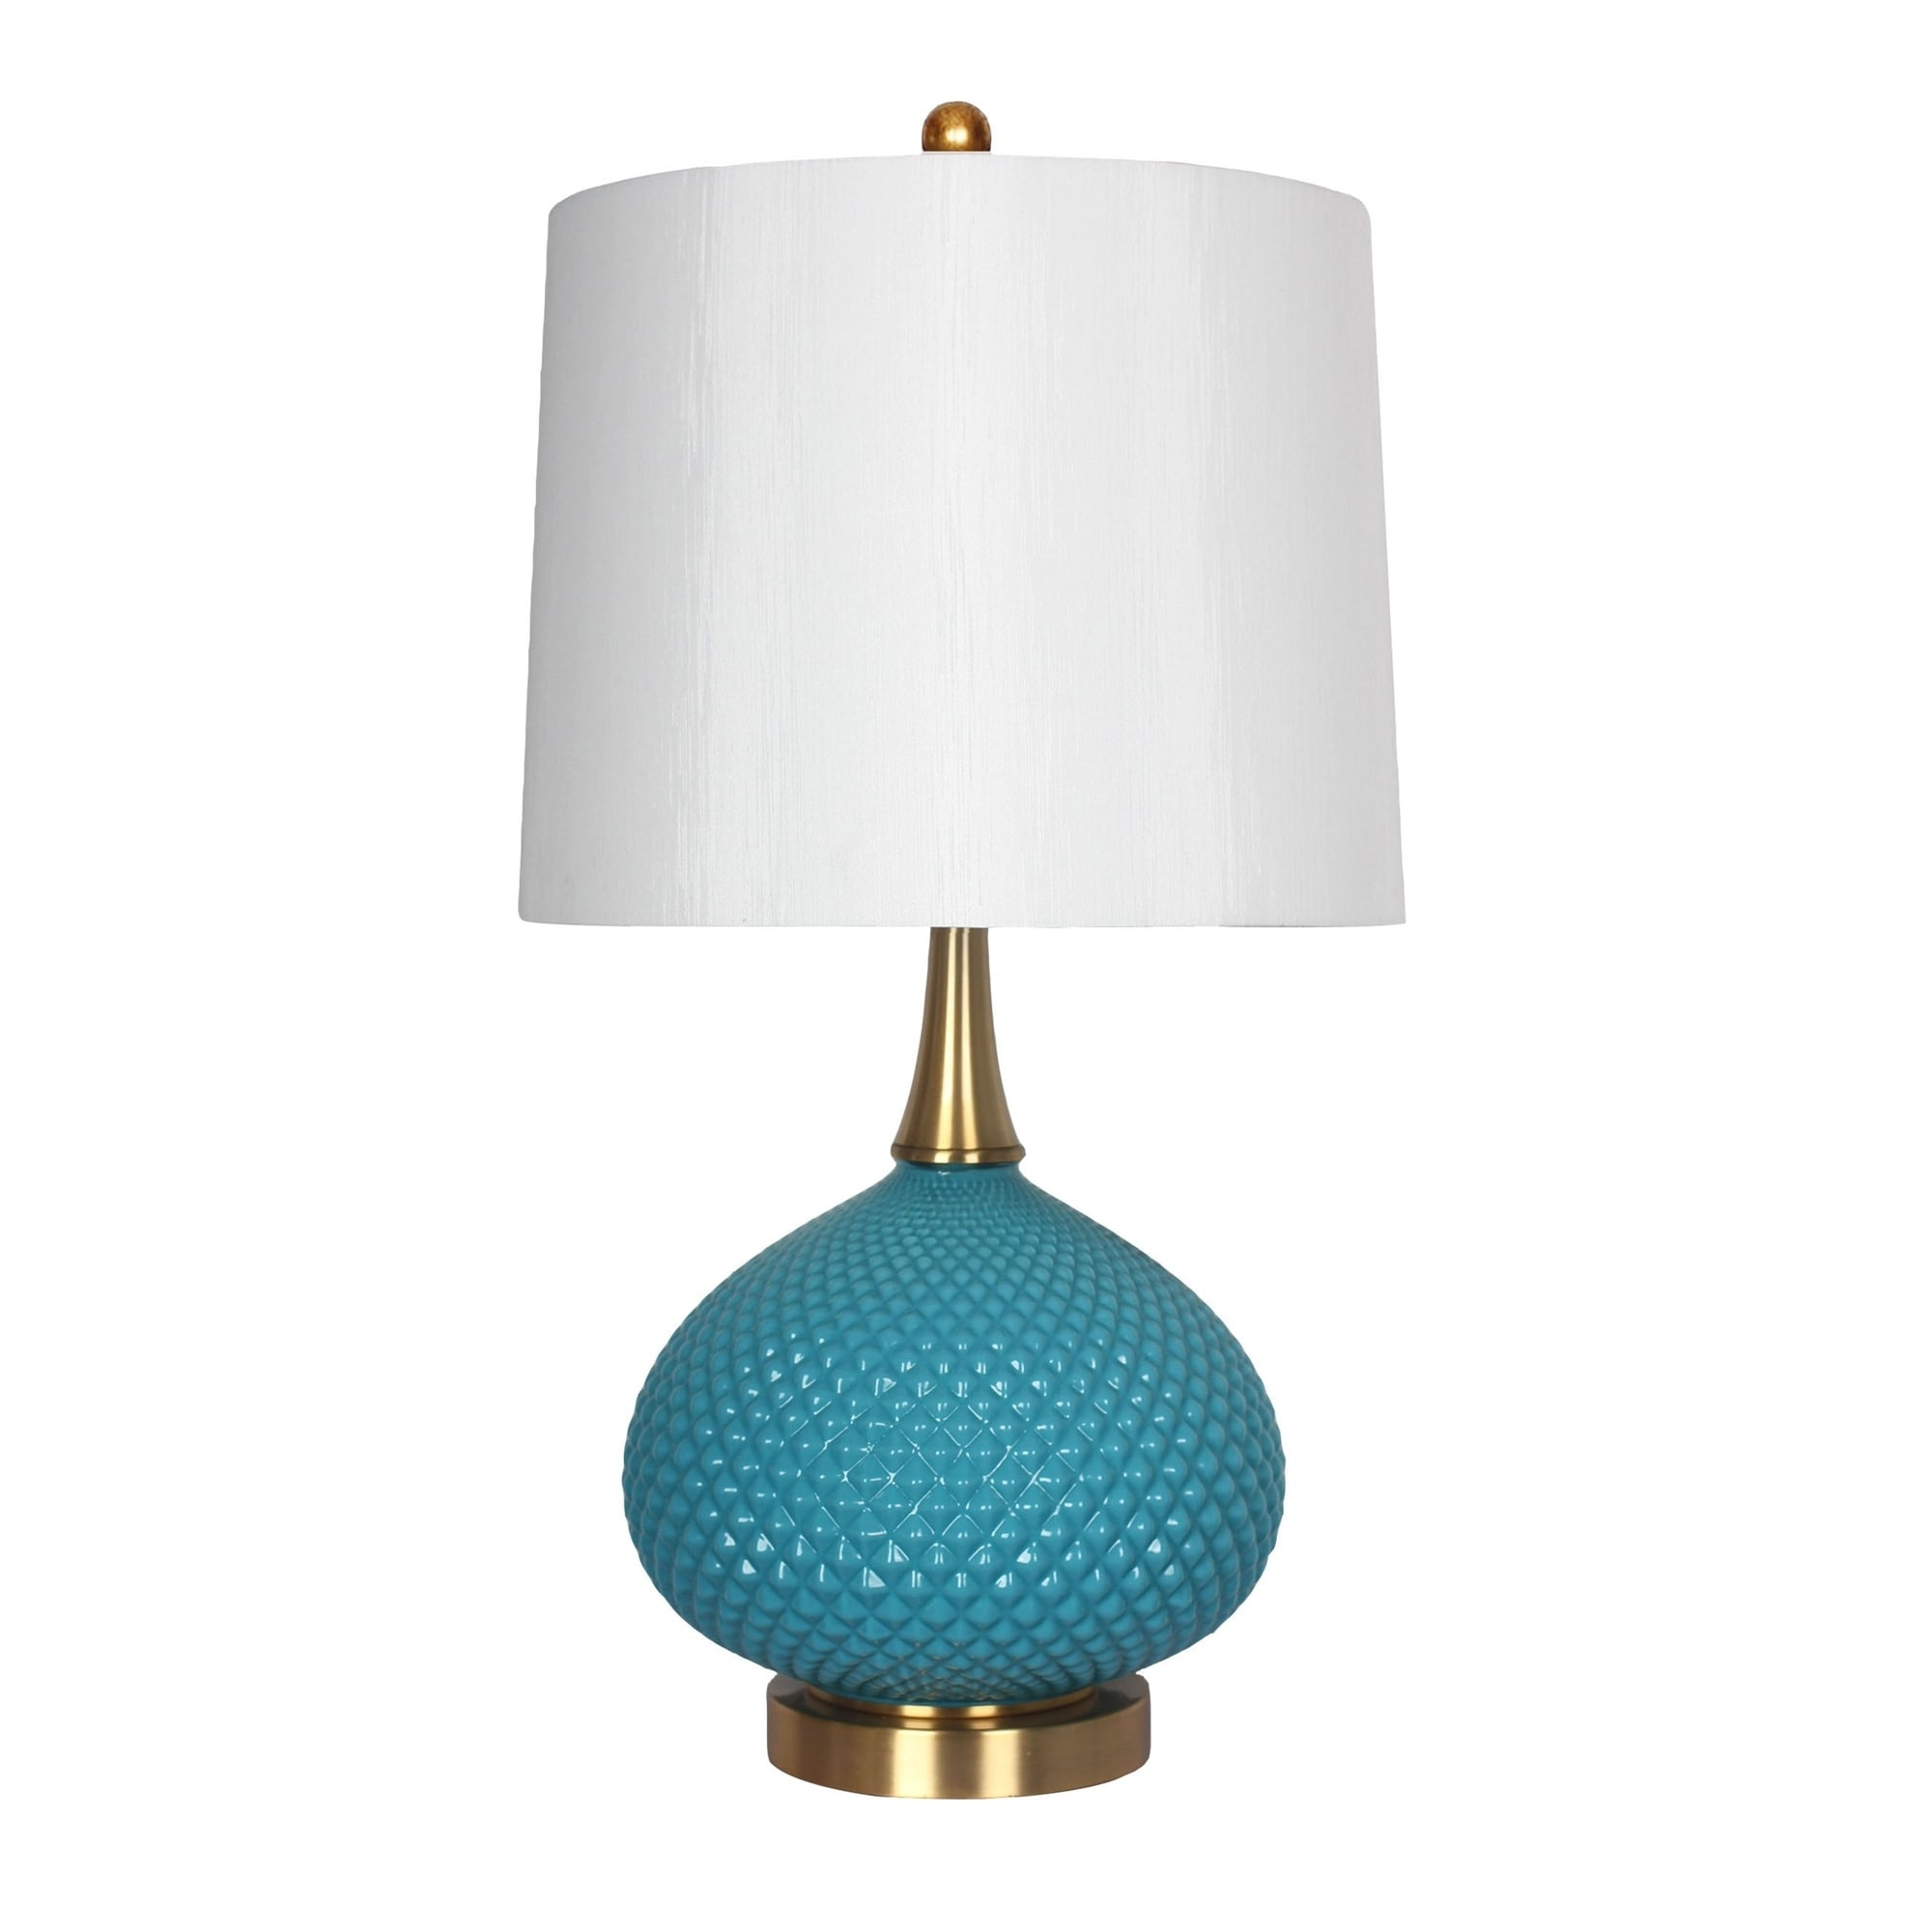 Shop Cut Glass Round Table Lamp Usb Port Blue 28 Free Shipping